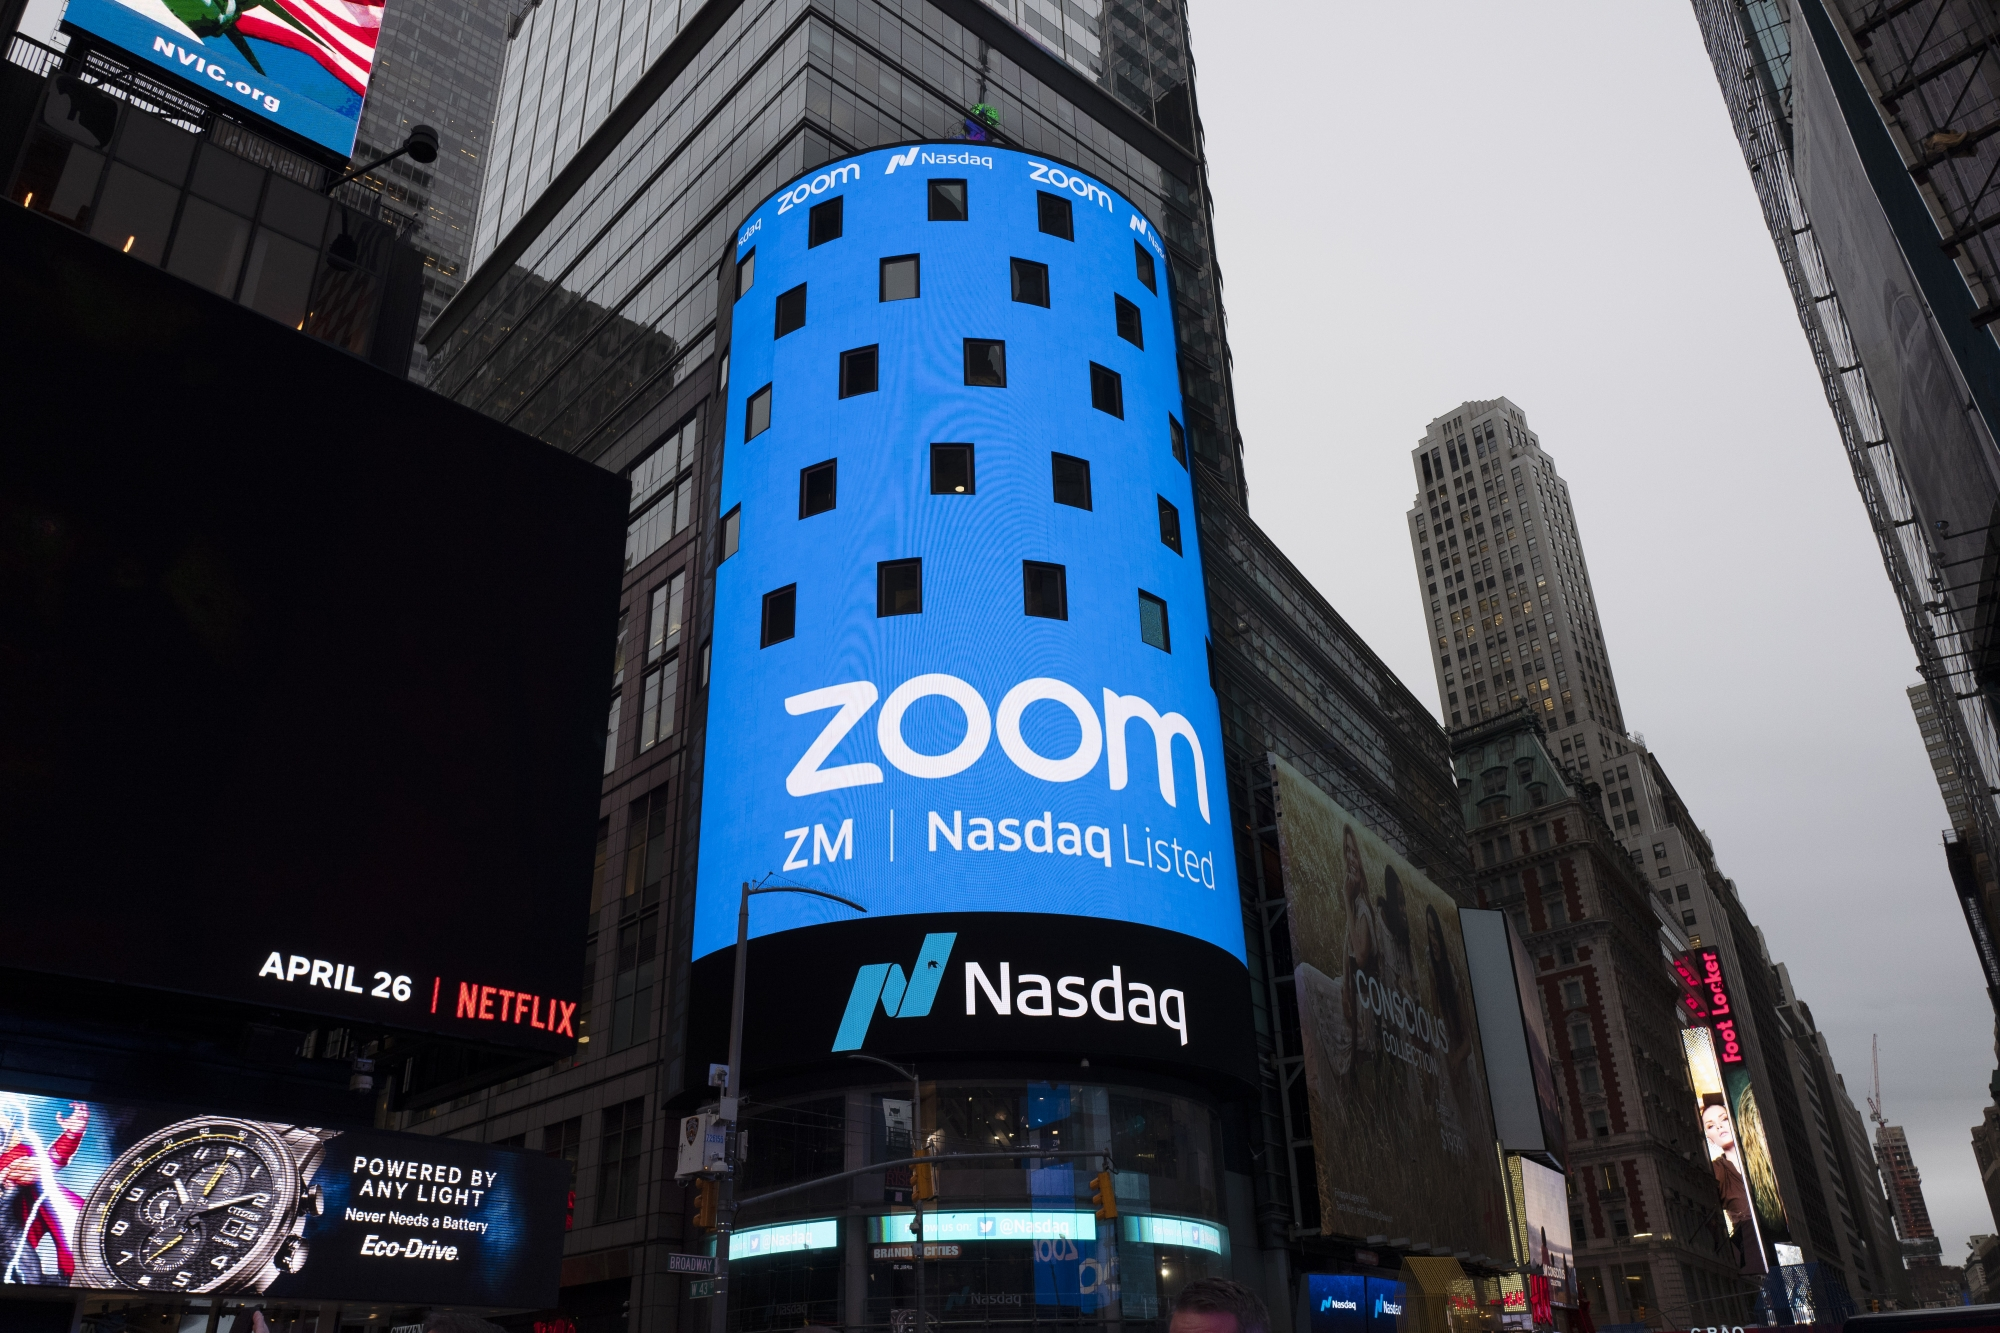 Zoom ipo how to buy